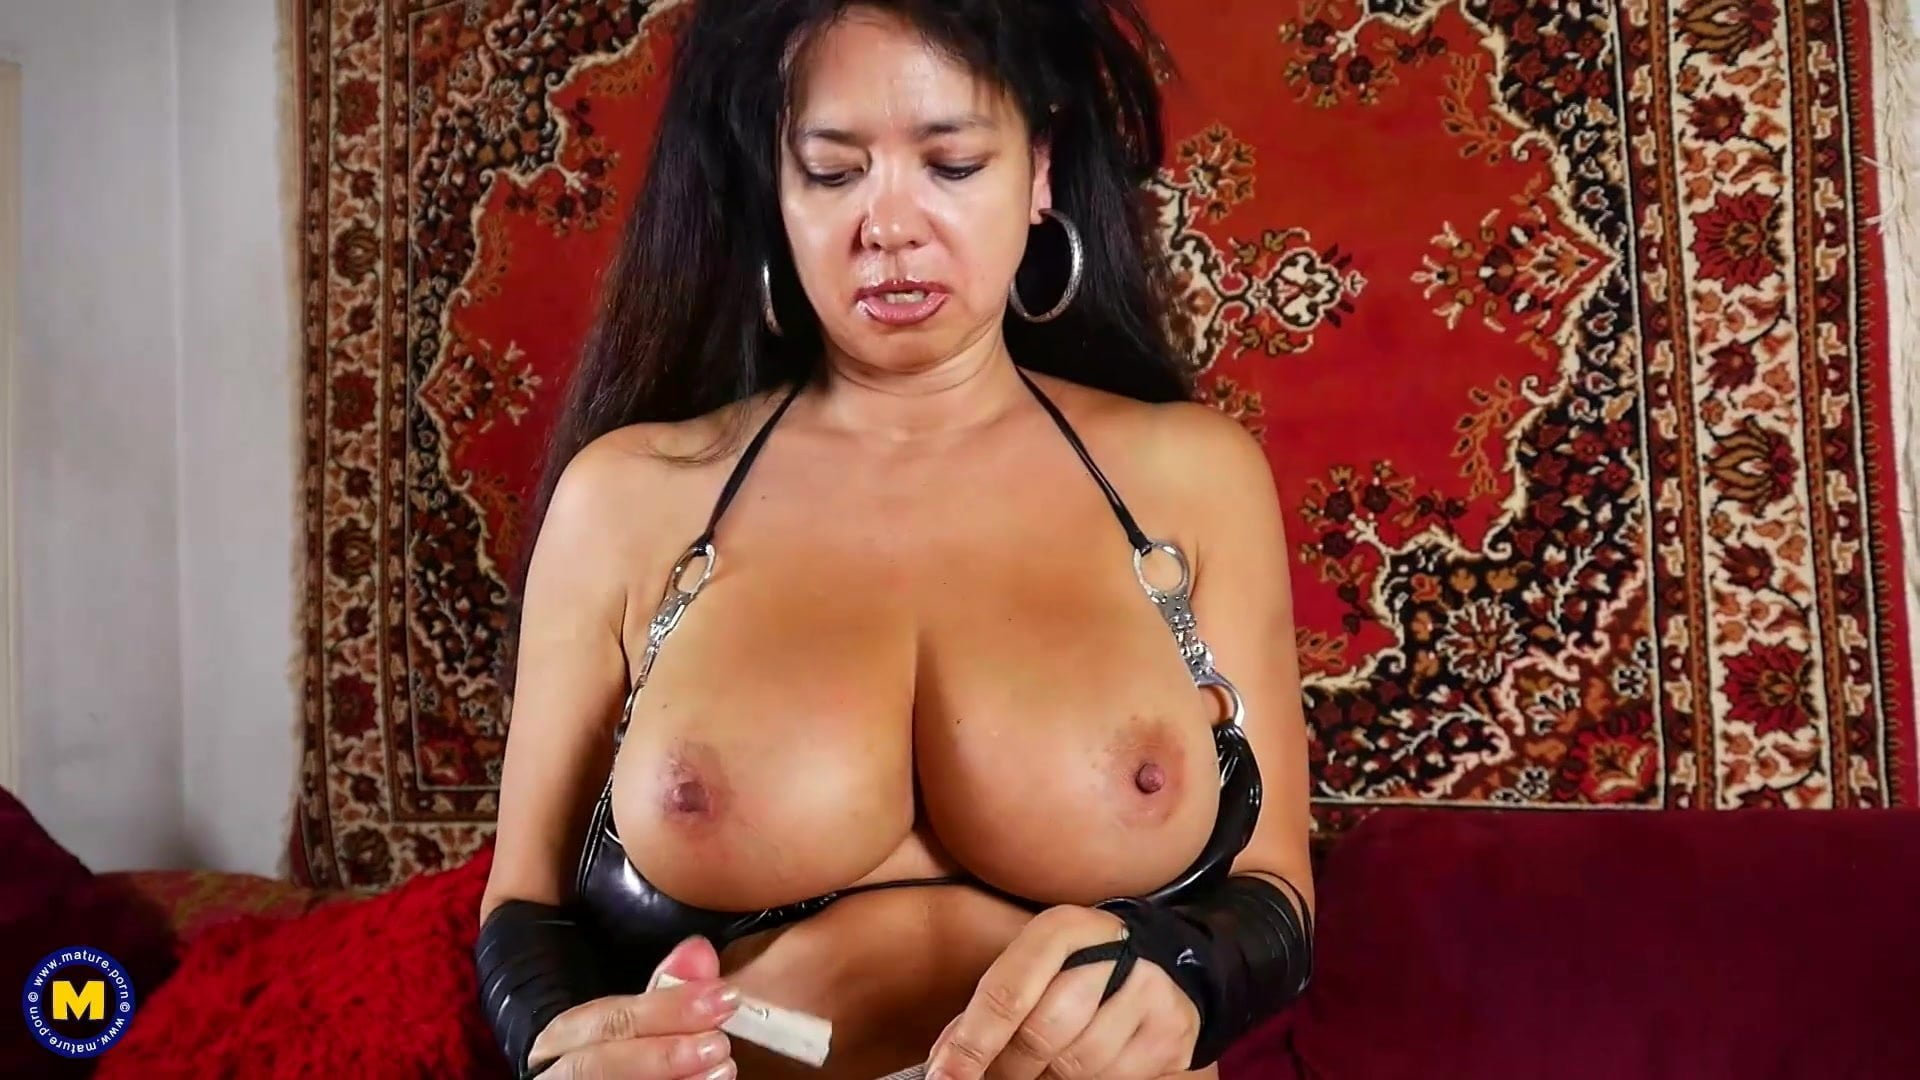 Rough sex loving busty mature mother